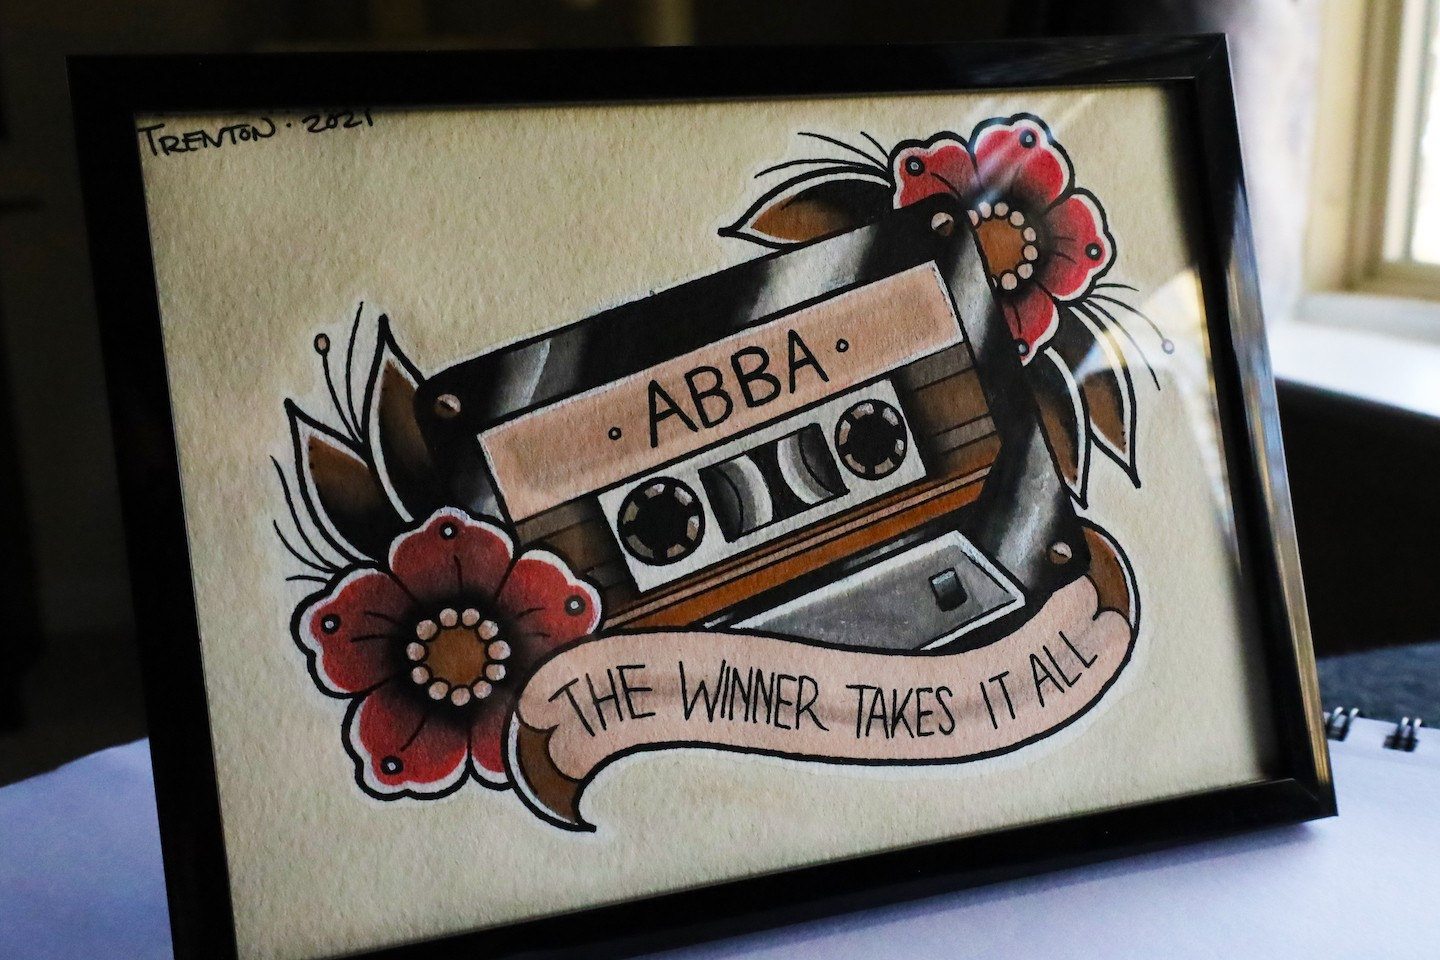 A casette tape dedicated to ABBA.